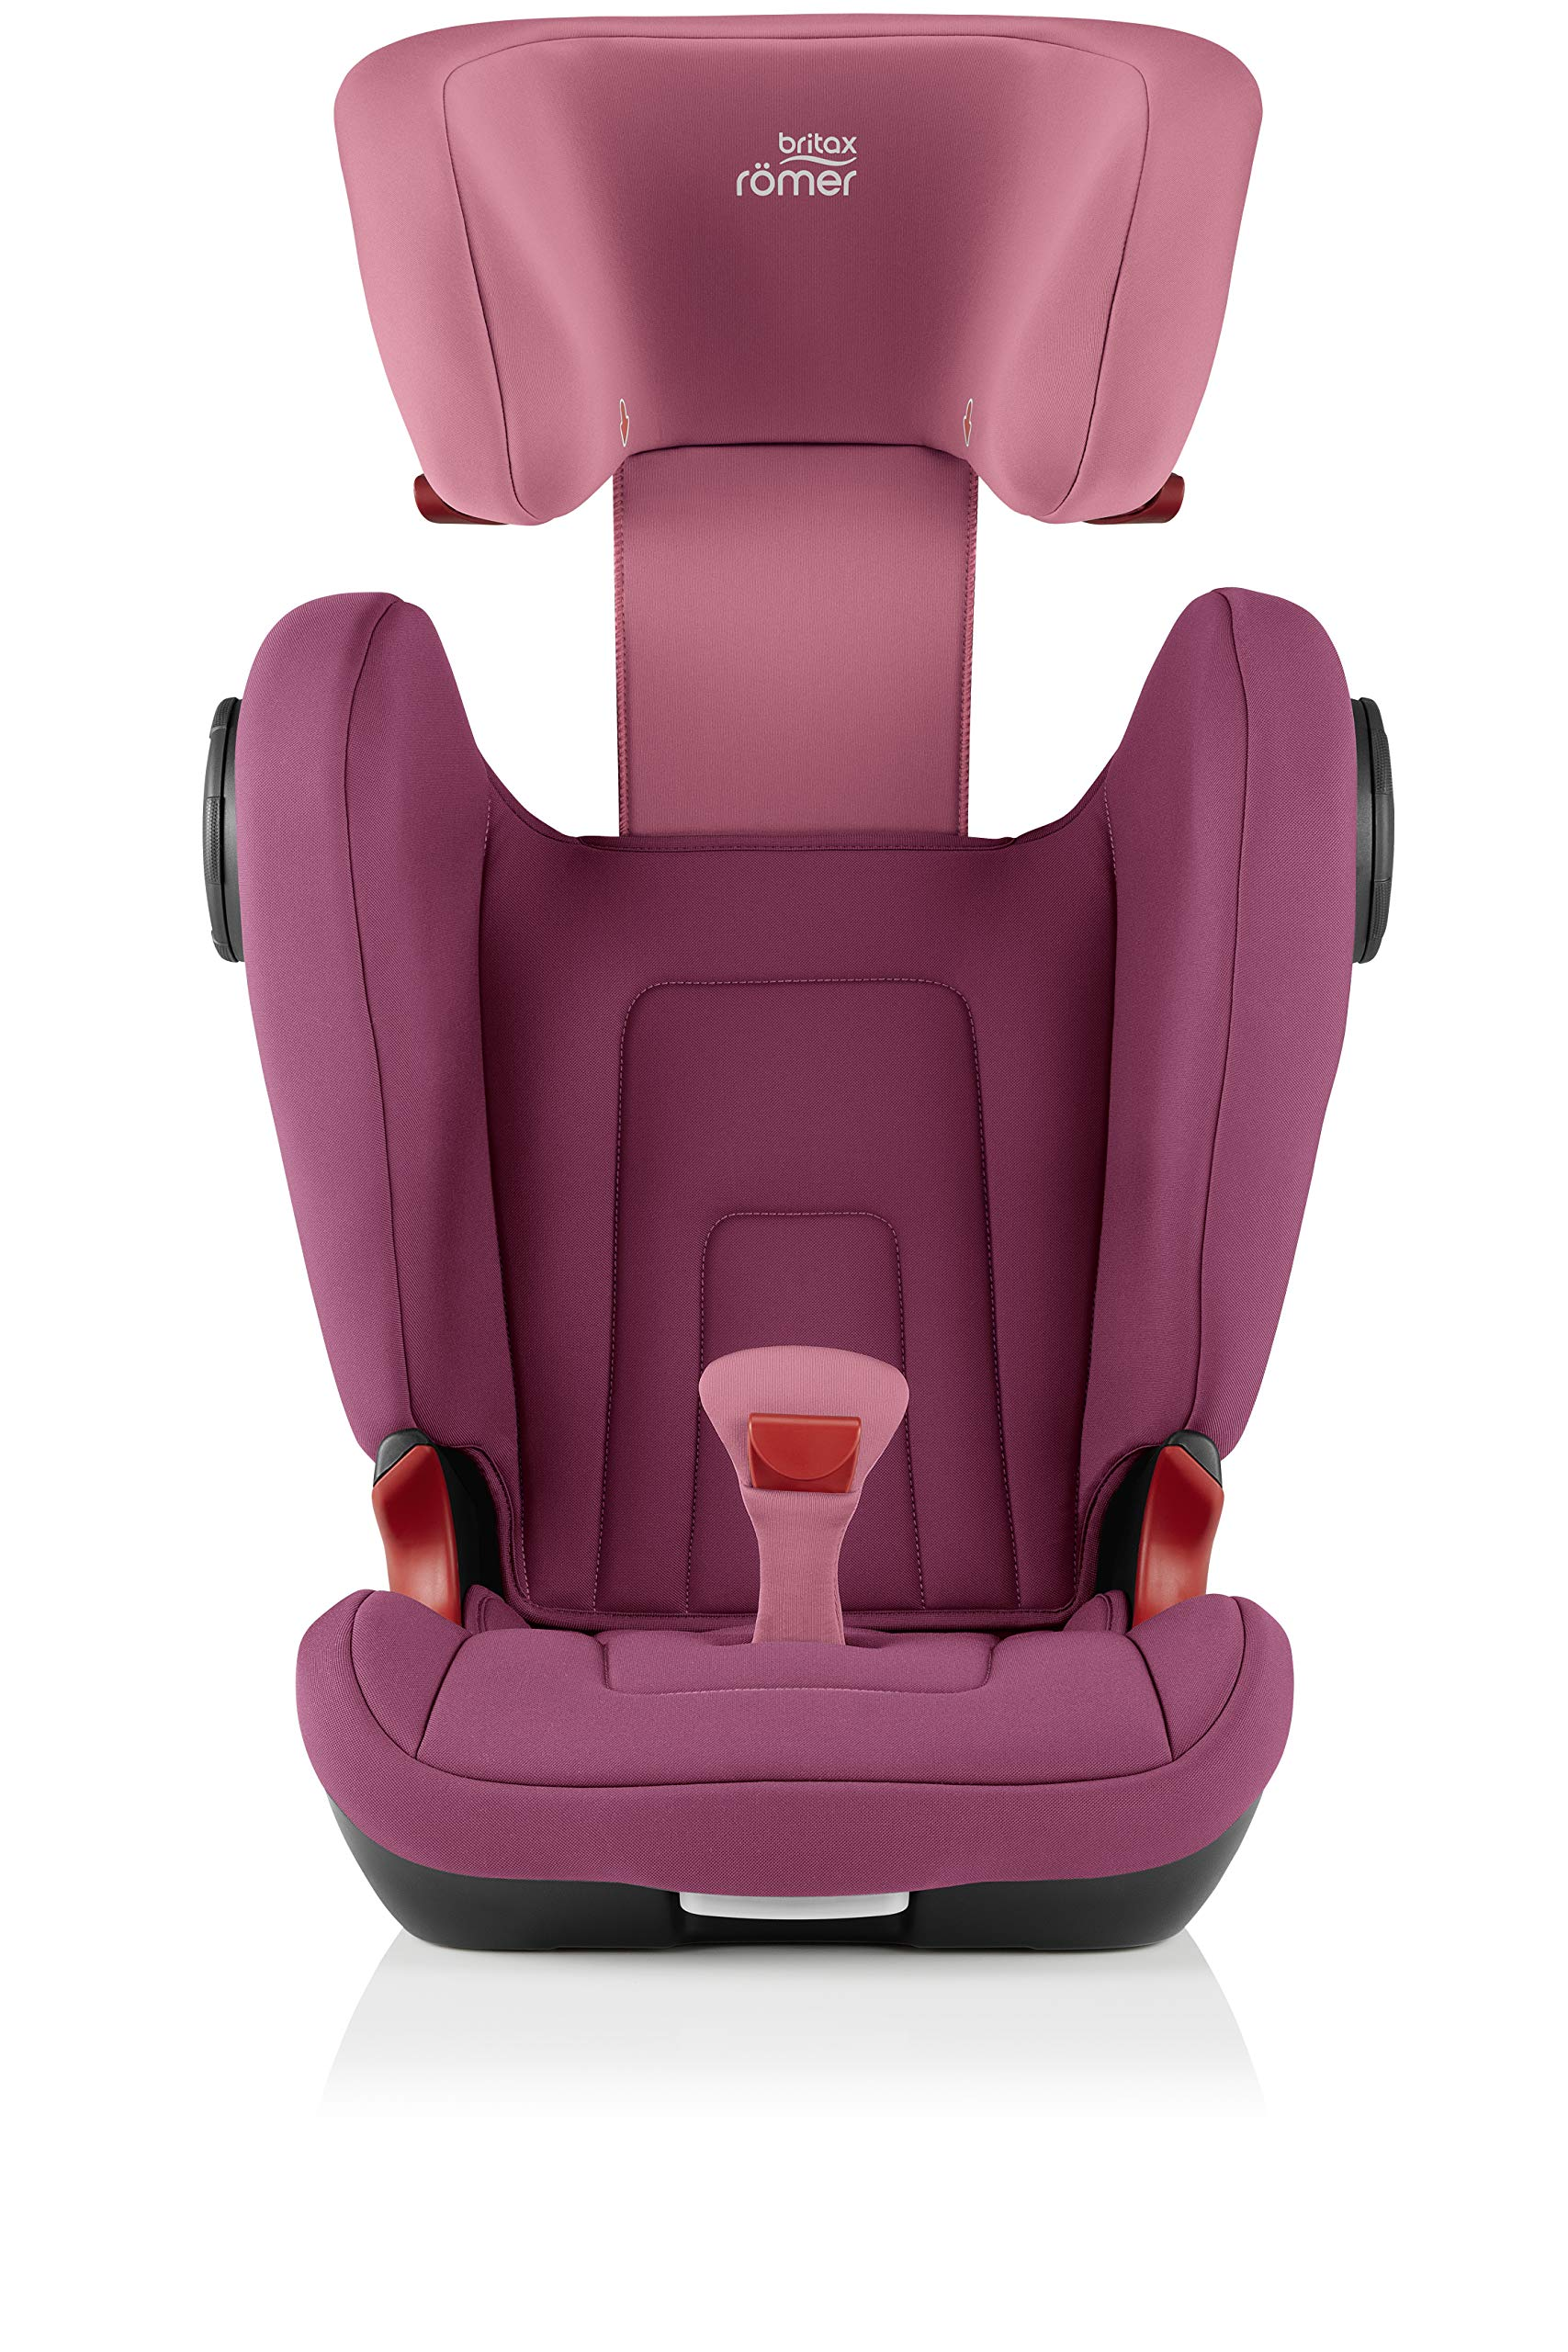 Britax Römer KIDFIX² S Group 2-3 (15-36kg) Car Seat - Wine Rose  Advanced side impact protection - sict offers superior protection to your child in the event of a side collision. reducing impact forces by minimising the distance between the car and the car seat. Secure guard - helps to protect your child's delicate abdominal area by adding an extra - a 4th - contact point to the 3-point seat belt. High back booster - protects your child in 3 ways: provides head to hip protection; belt guides provide correct positioning of the seat belt and the padded headrest provides safety and comfort. 7